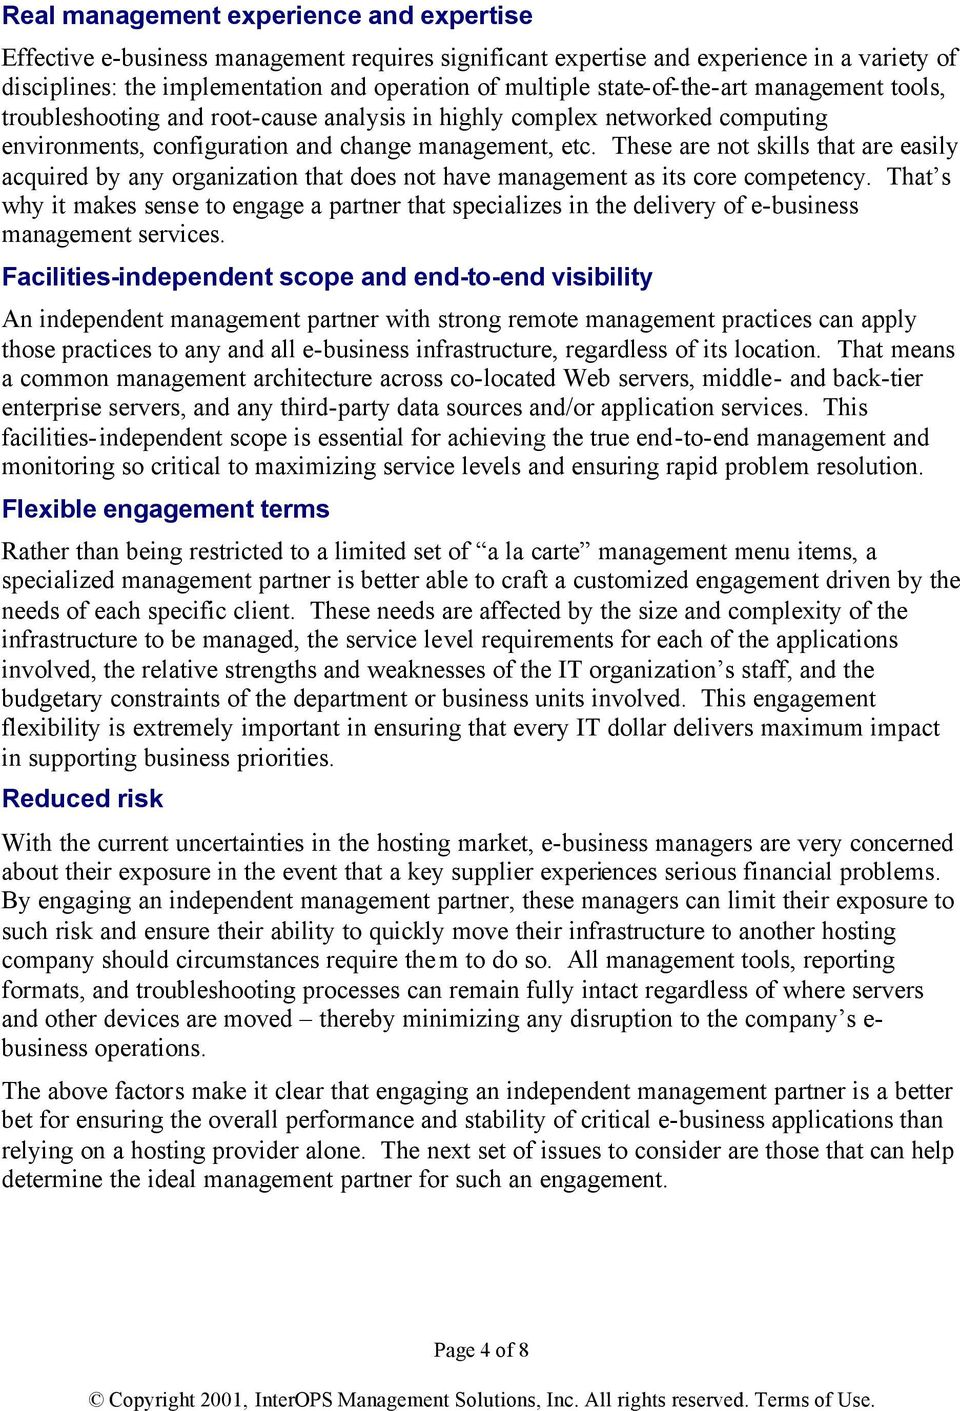 These are not skills that are easily acquired by any organization that does not have management as its core competency.